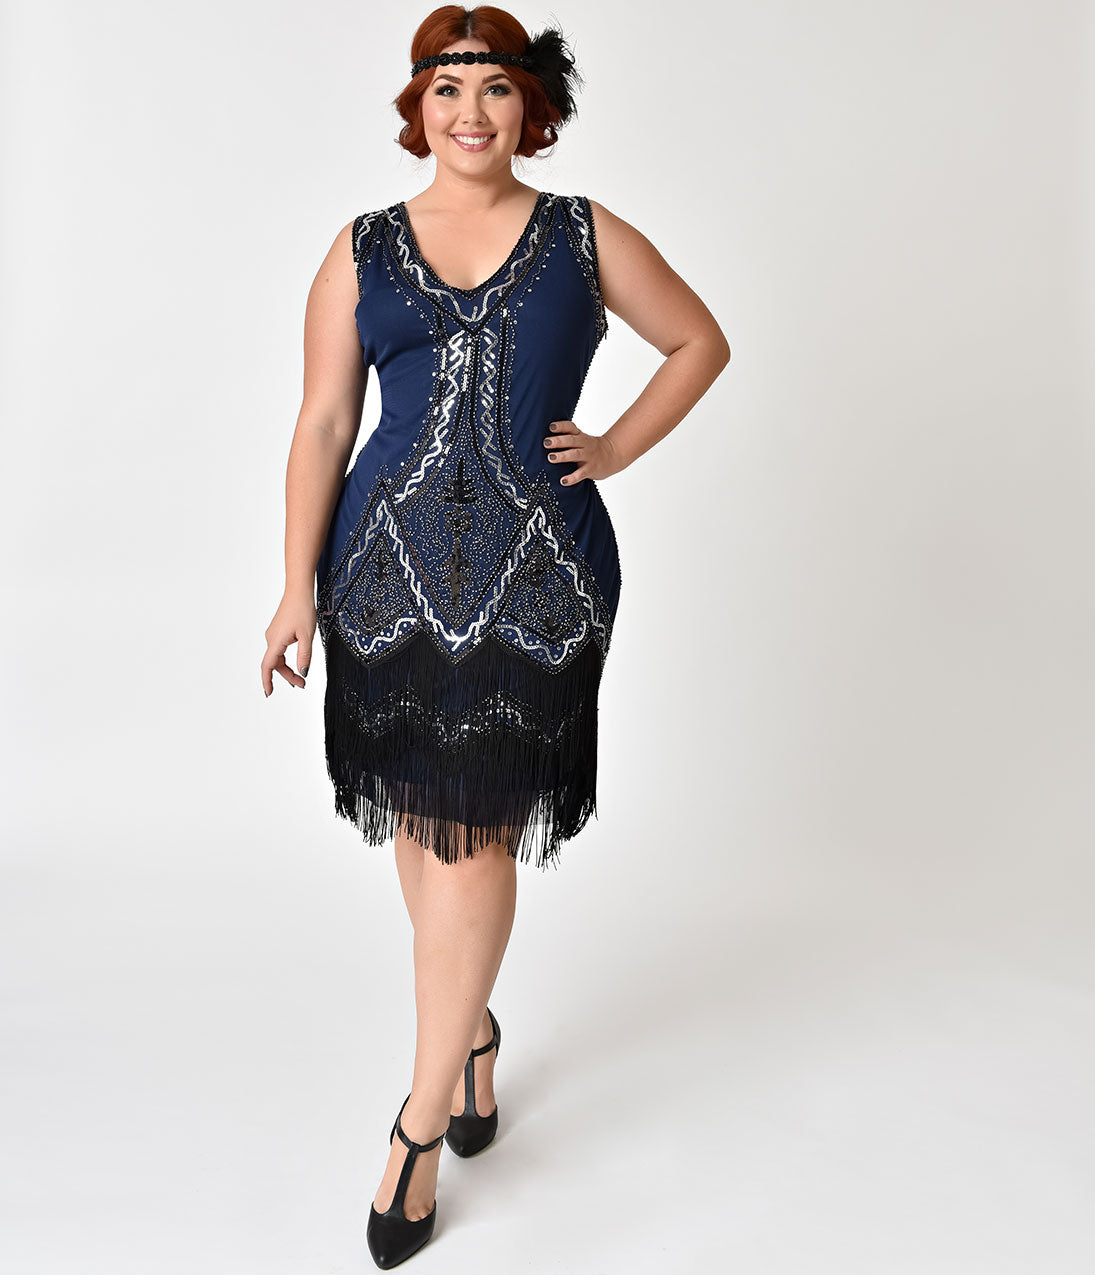 1920s Style Dresses, Flapper Dresses 1920S Style Navy Blue Beaded Sylvie Flapper Dress $74.00 AT vintagedancer.com